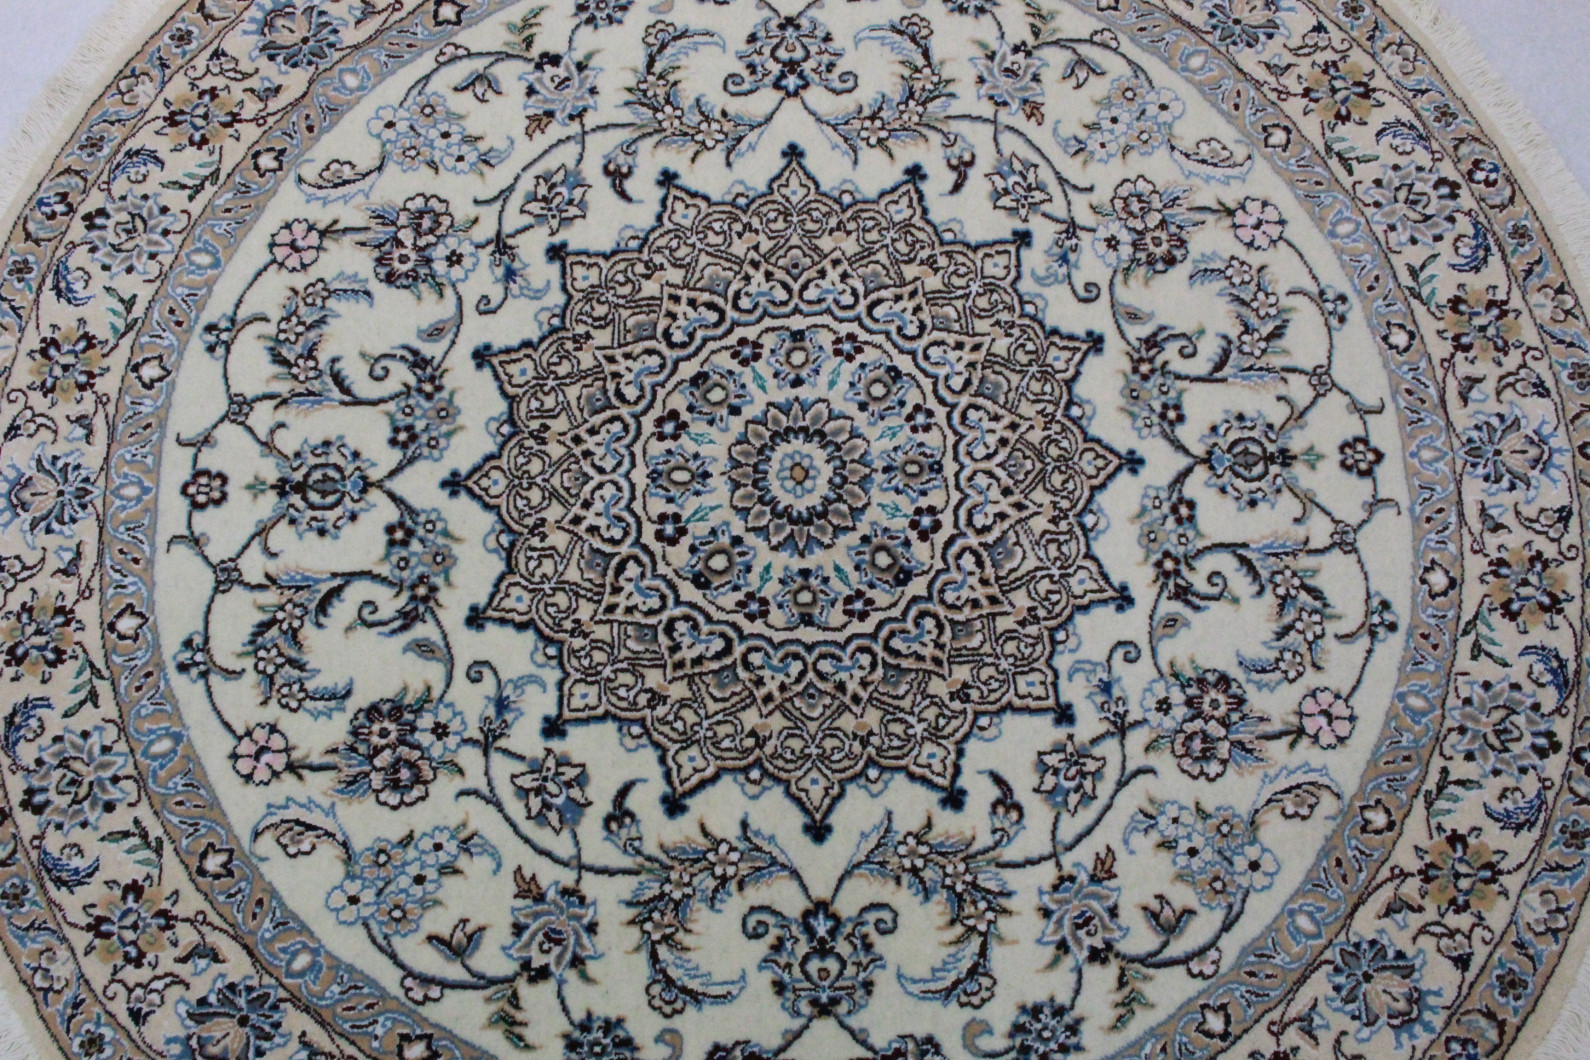 nain teppich rund beige blau in 150x150 5120 26649 bei kaufen. Black Bedroom Furniture Sets. Home Design Ideas